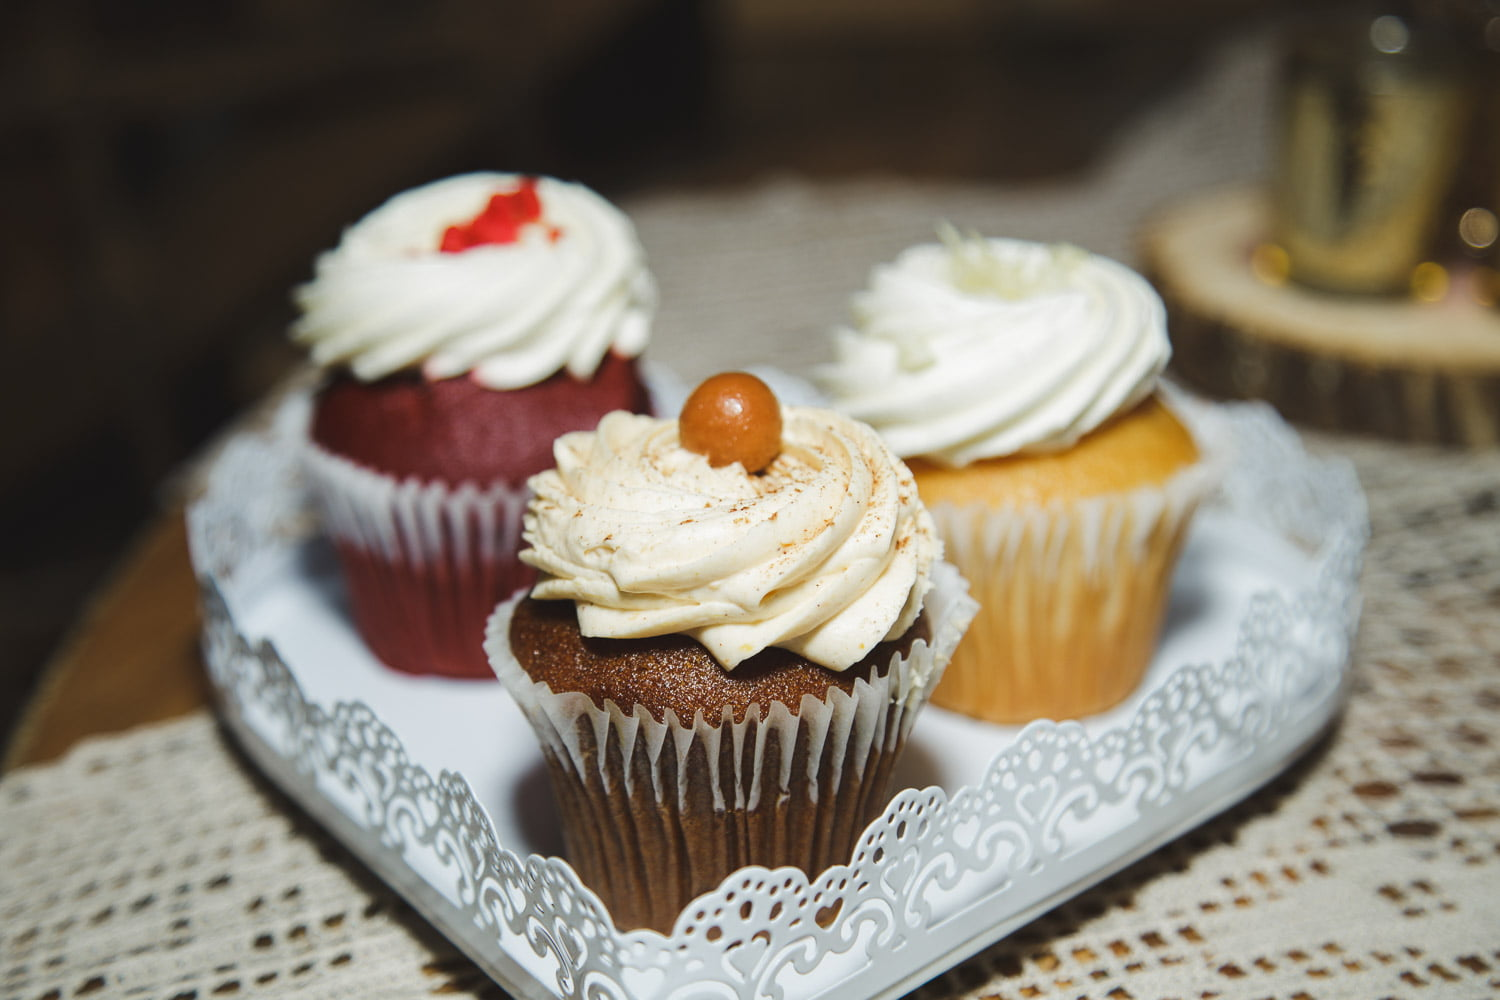 cupcakes by dangerfields wedding catering